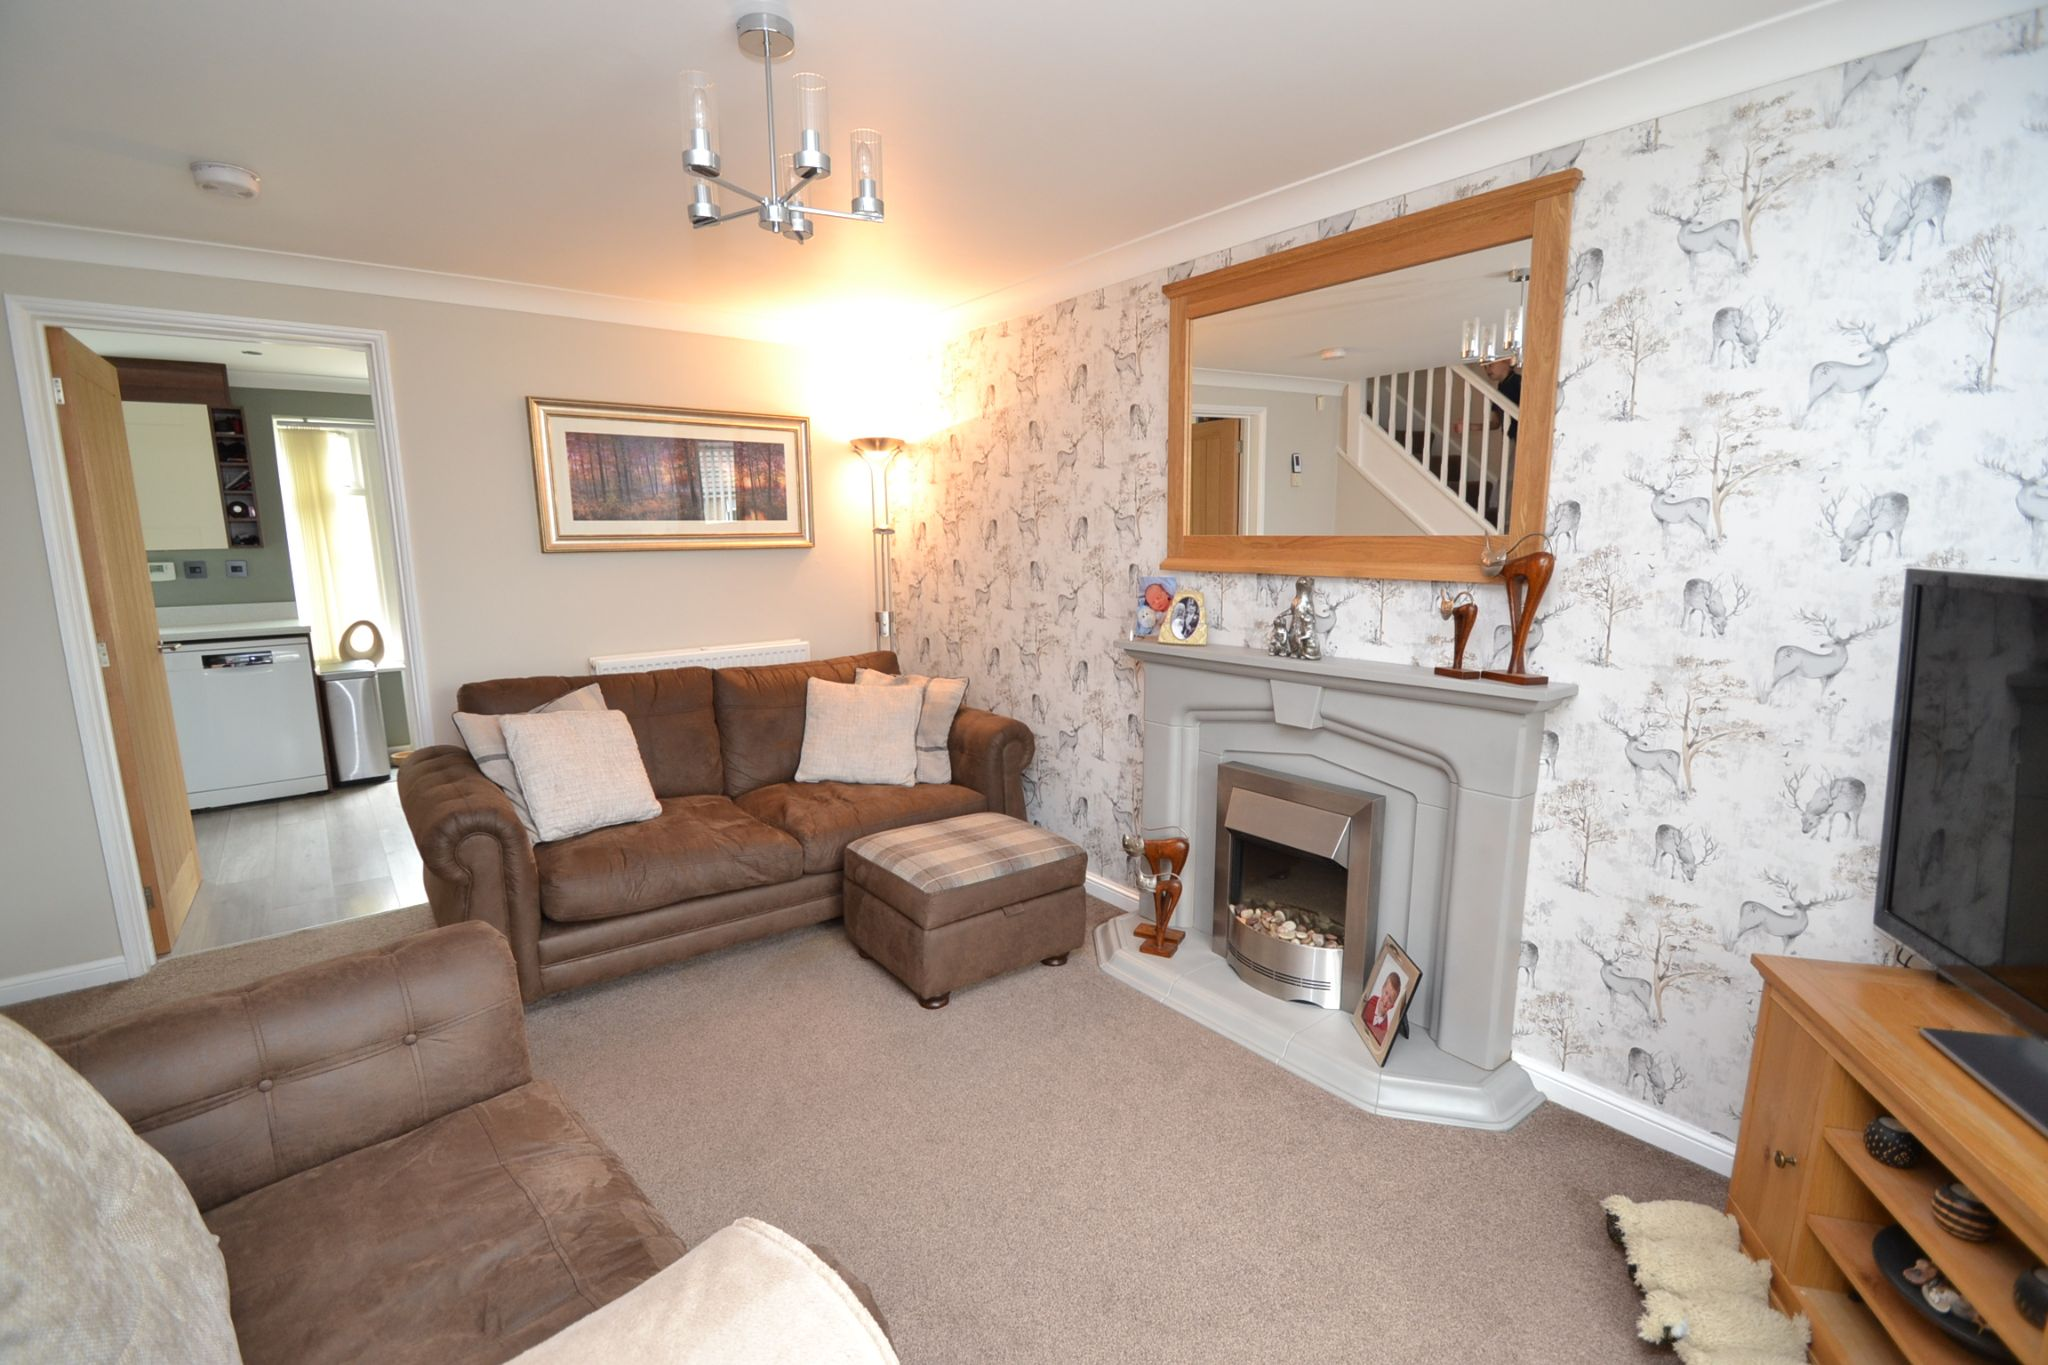 3 Bedroom End Terraced House For Sale - Photograph 3